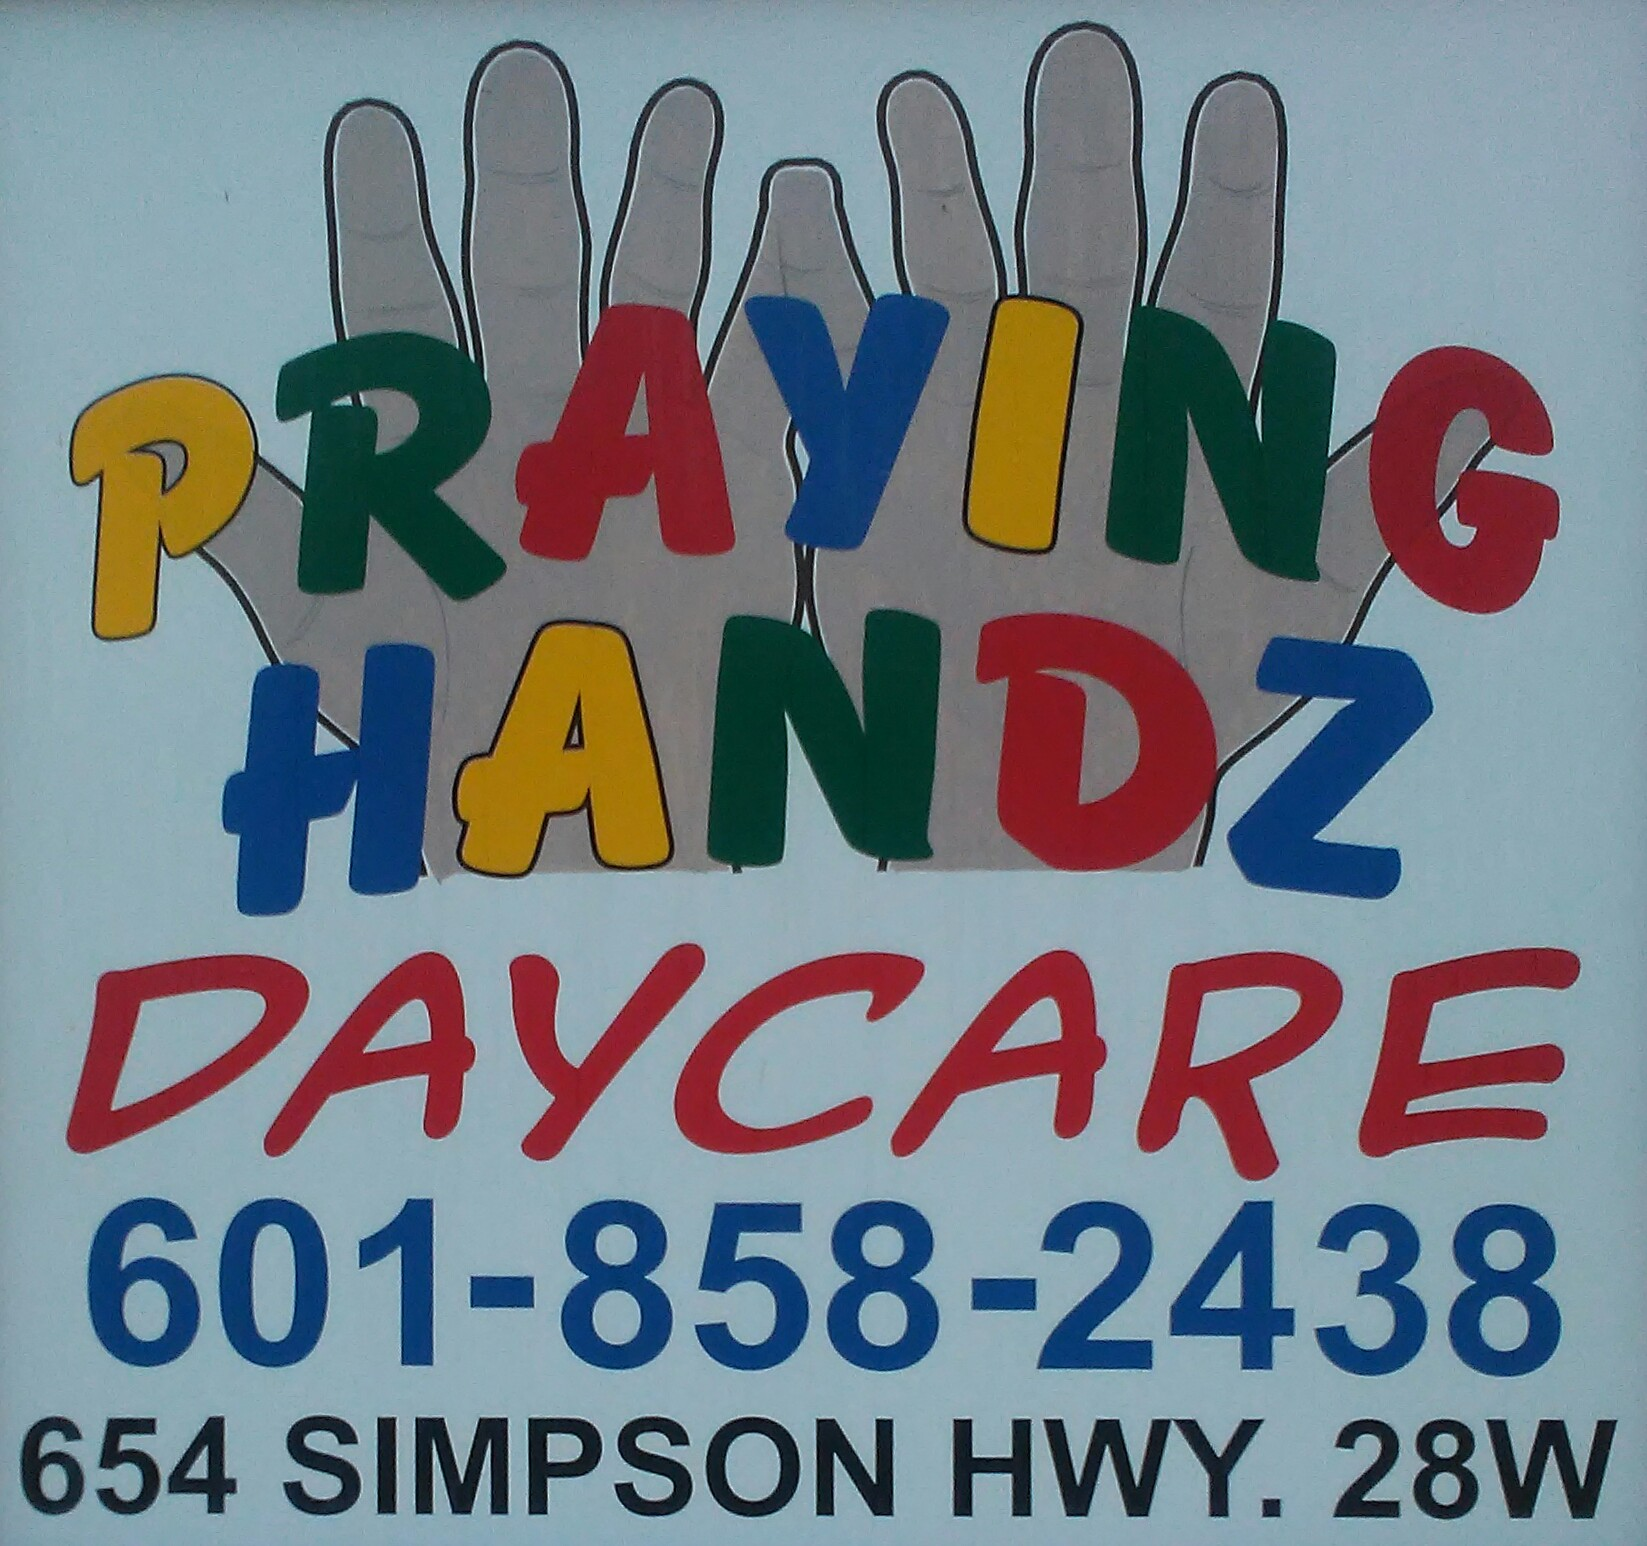 PRAYING HANDZ INC